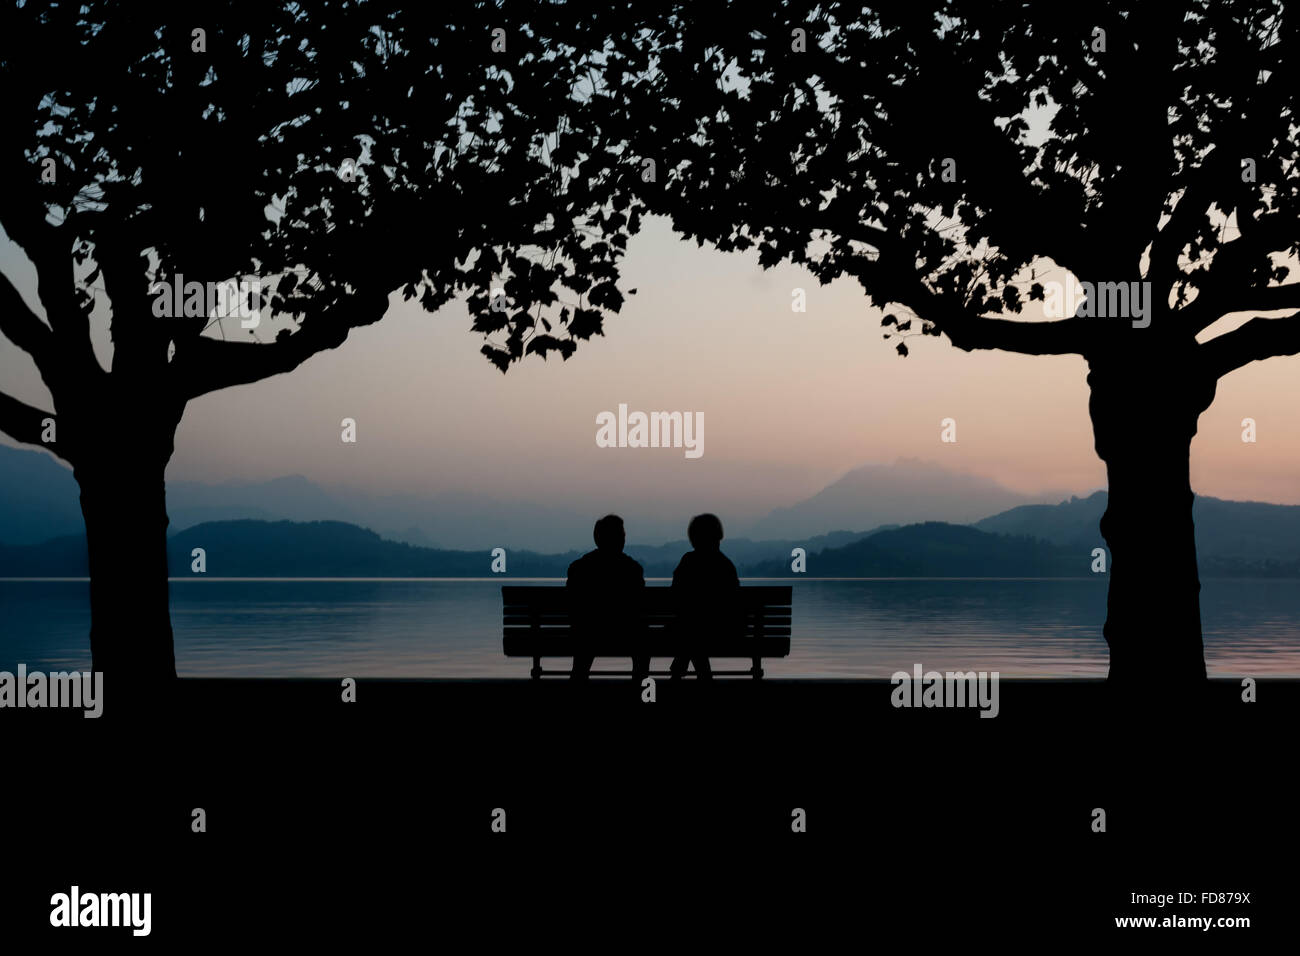 Silhouette Couple Sitting On Bench By Calm Lake At Dusk - Stock Image